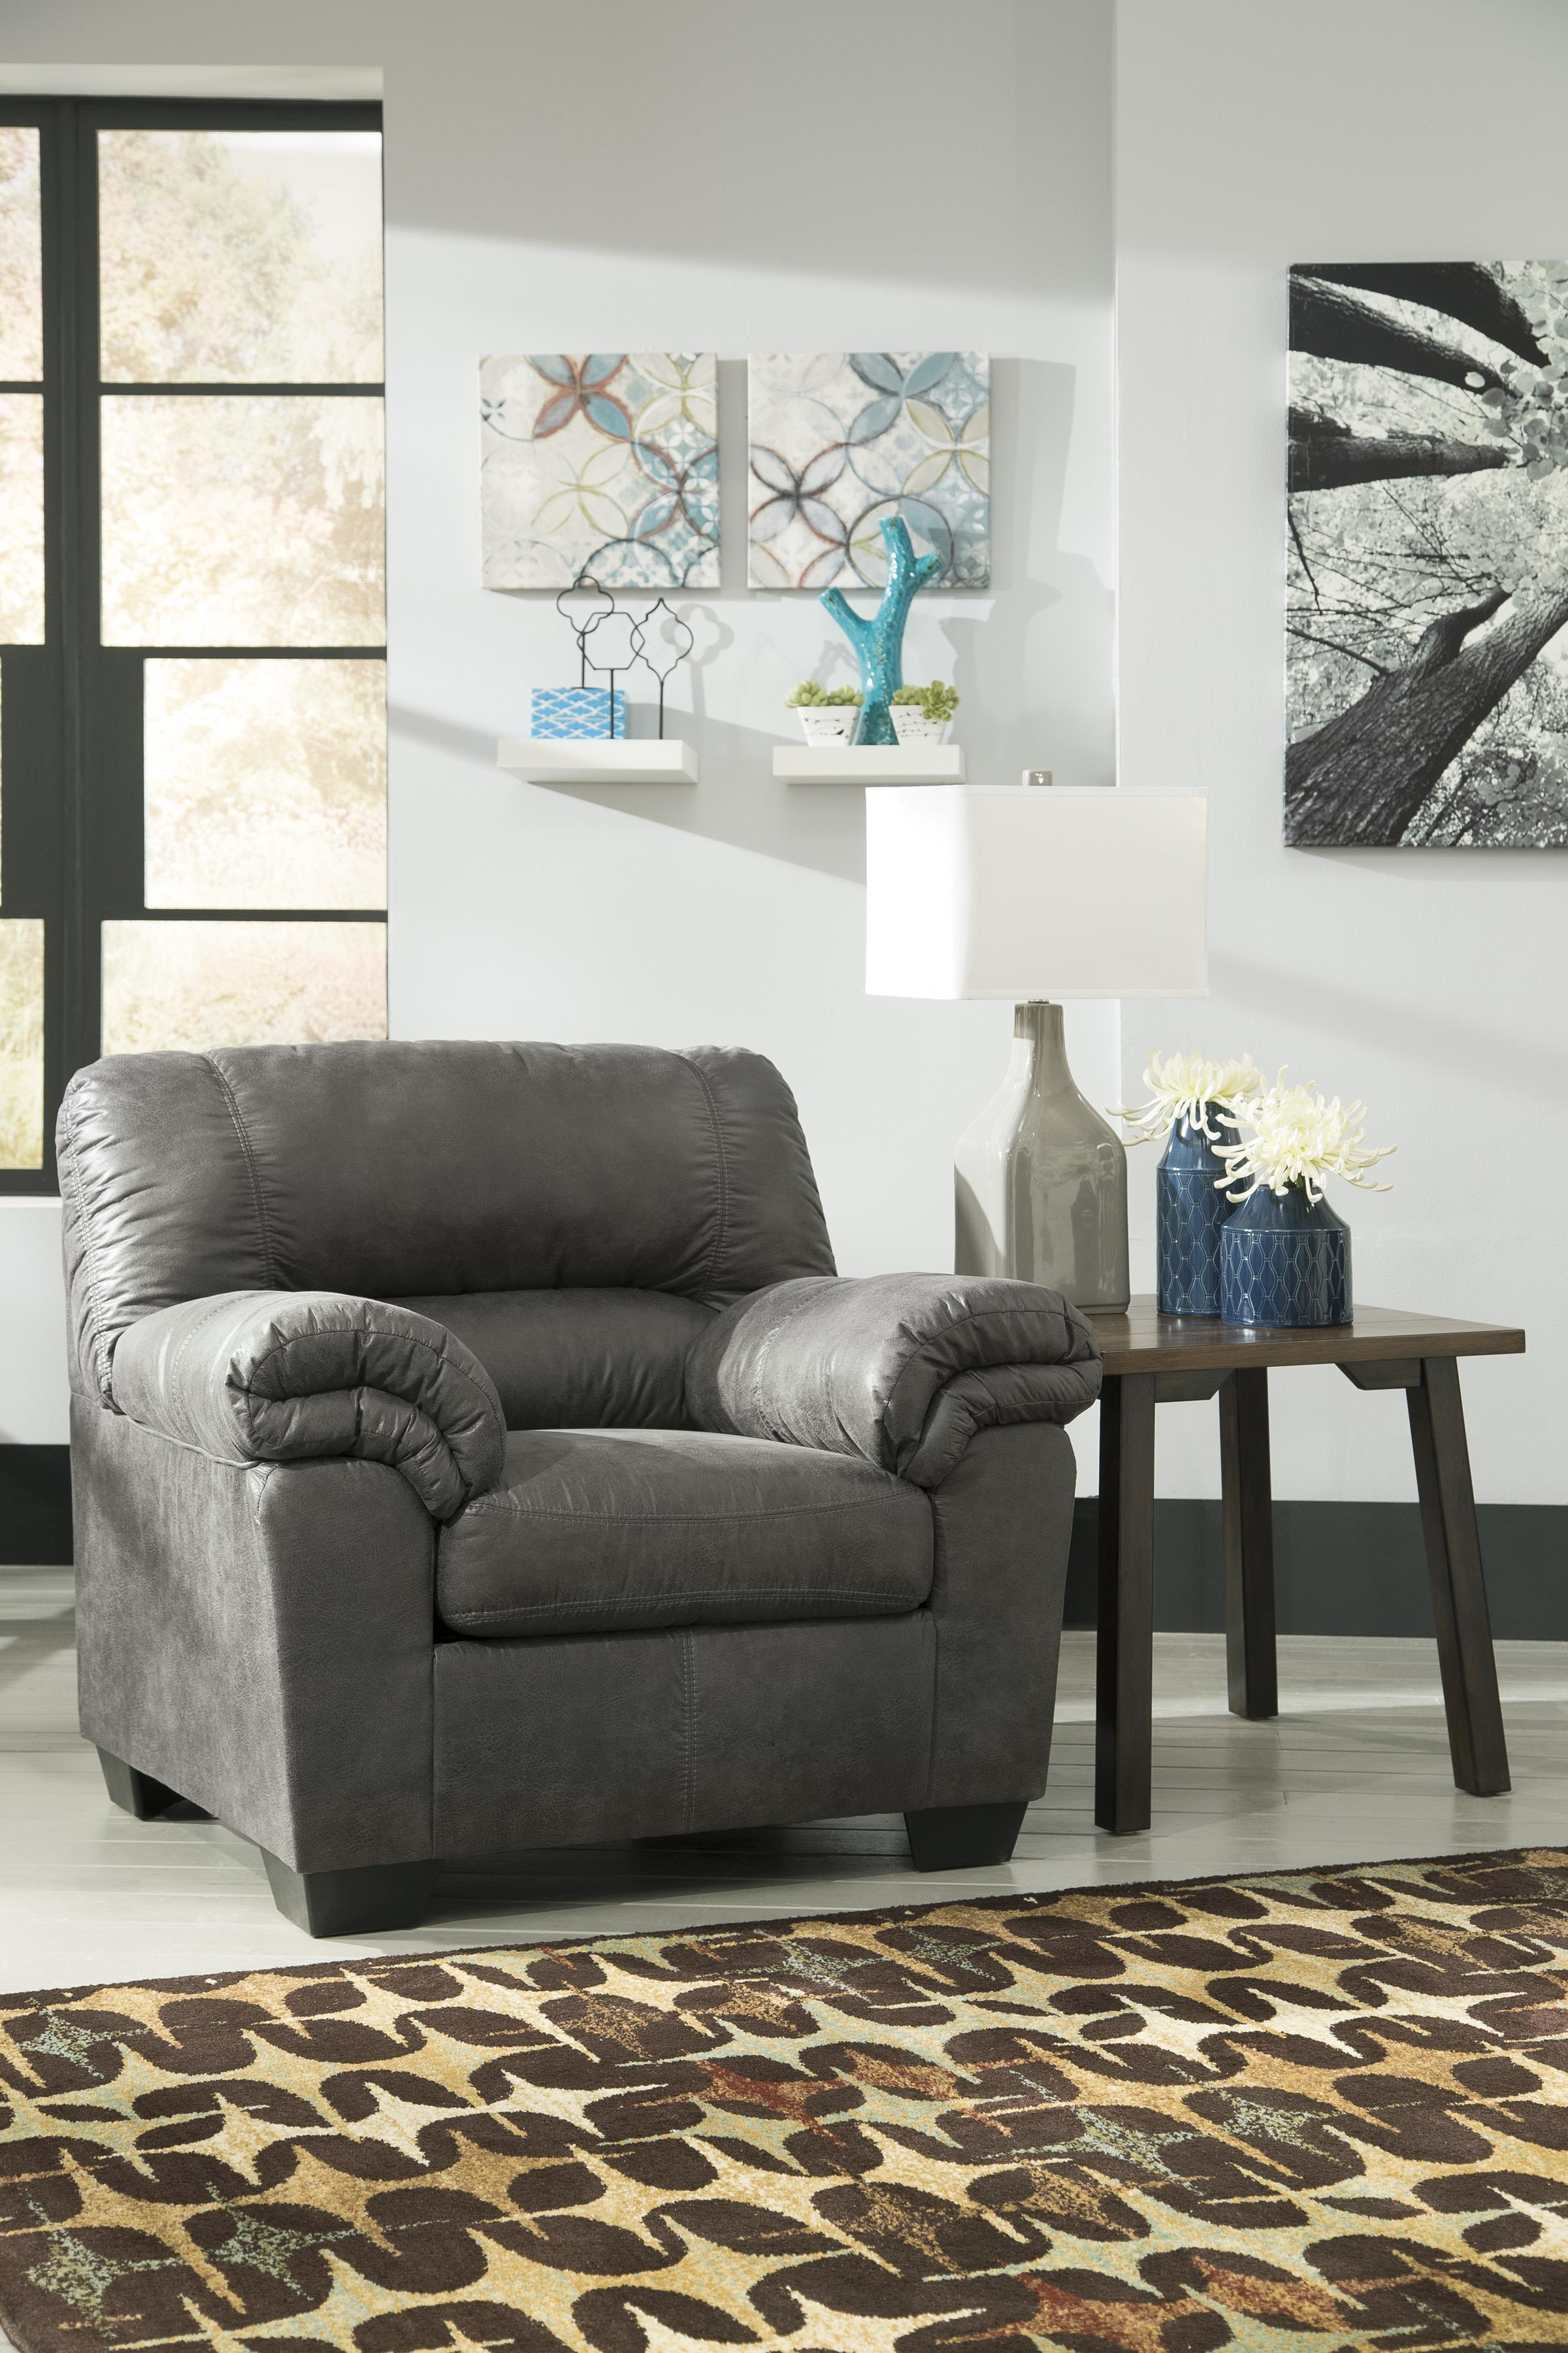 Signature design by ashley bladen casual faux leather chair ottoman royal furniture chair for Faux leather living room furniture